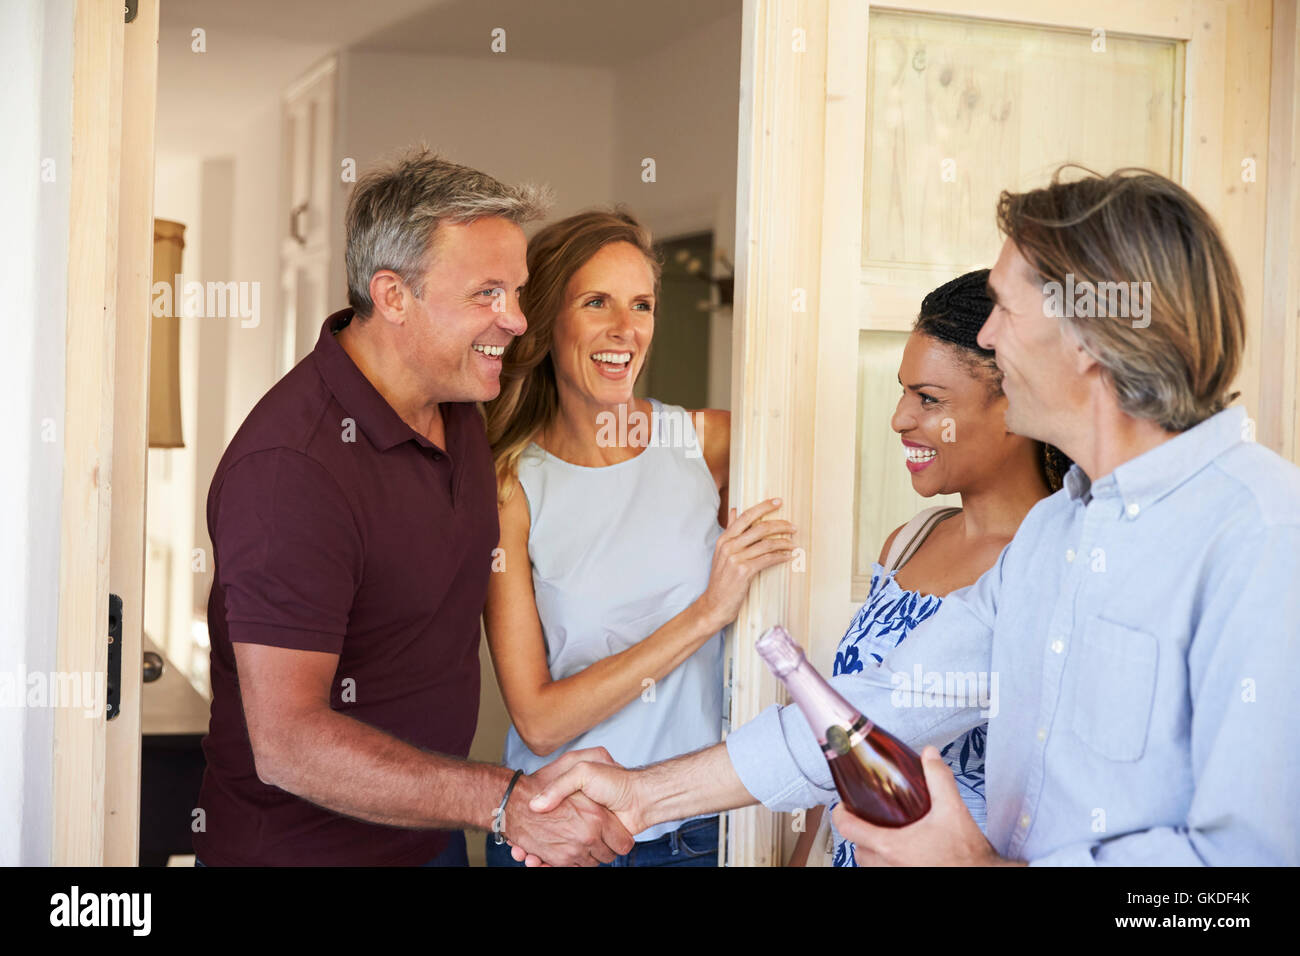 Couple greeting their guests at the door of their home - Stock Image